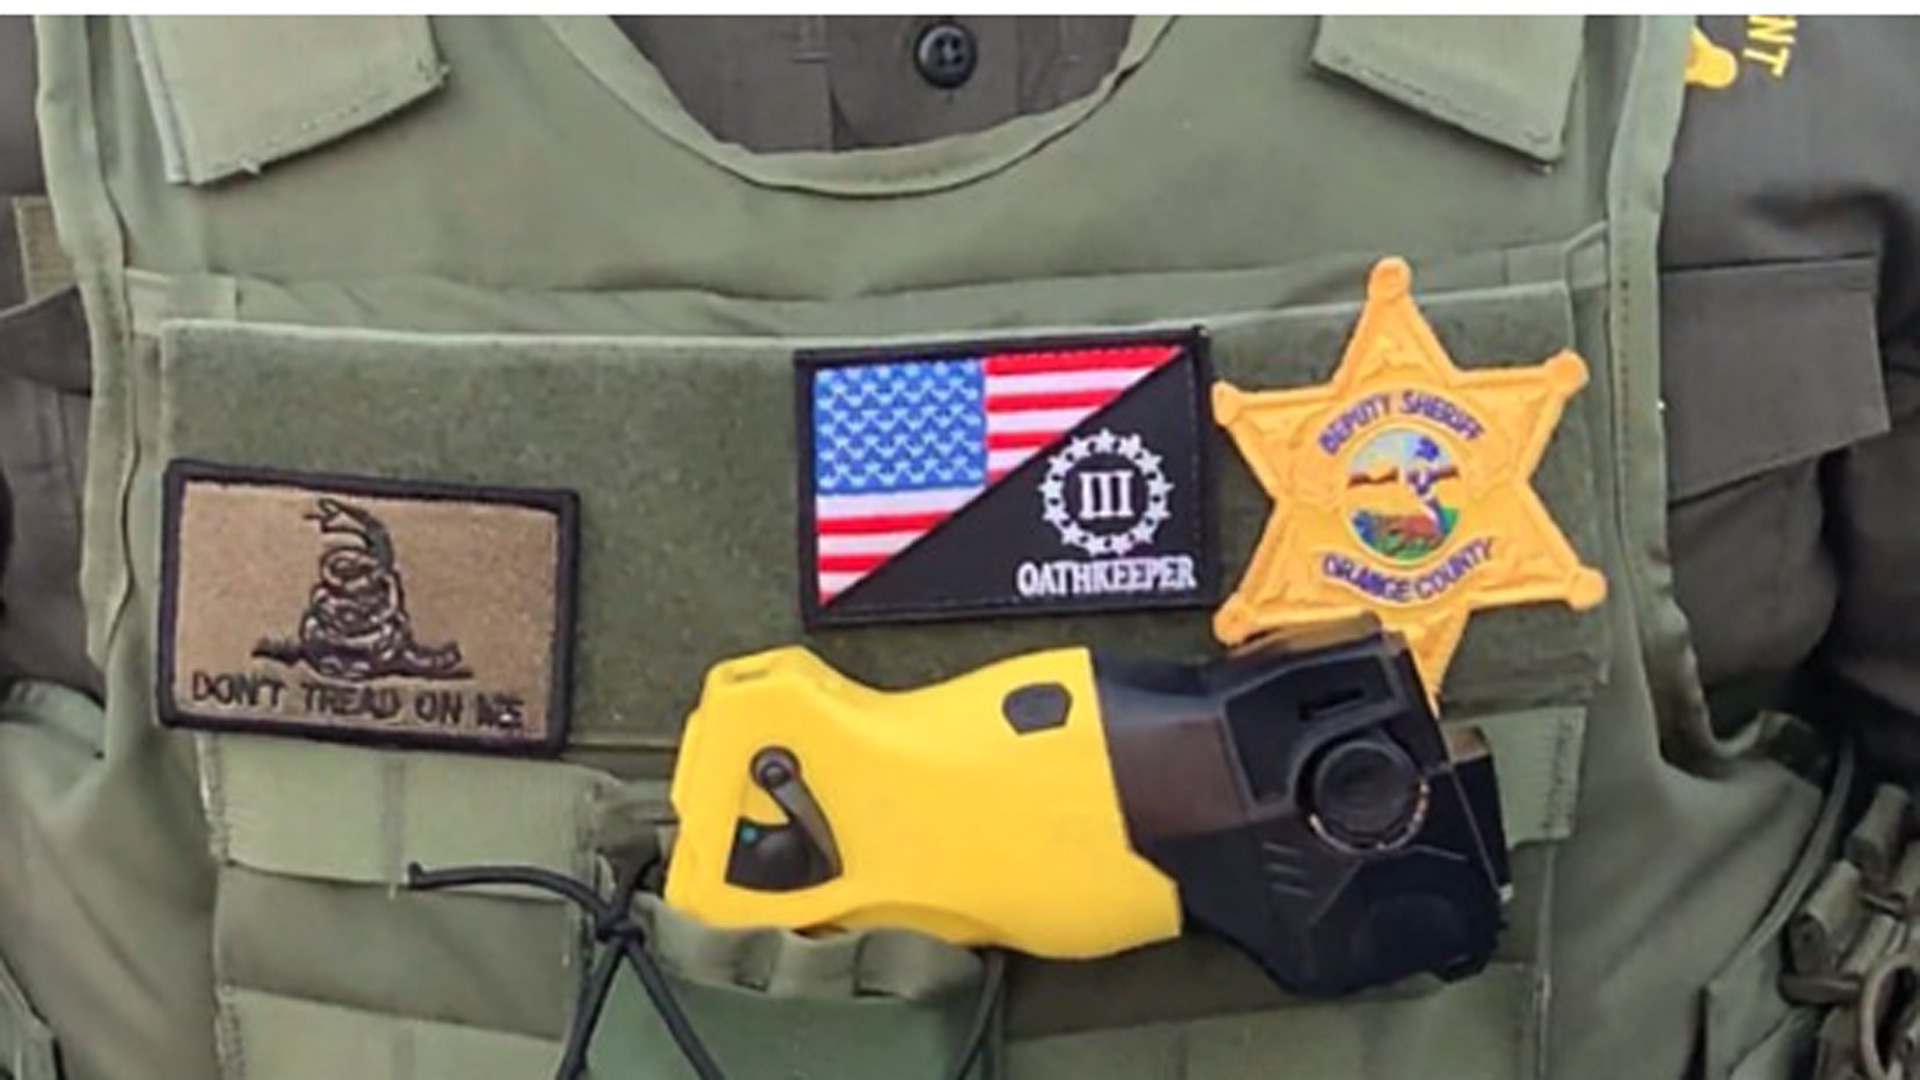 An internal investigation was launched on June 3, 2020 into an OCSD's deputy for extremist patches on his uniform. (credit @DPOC)